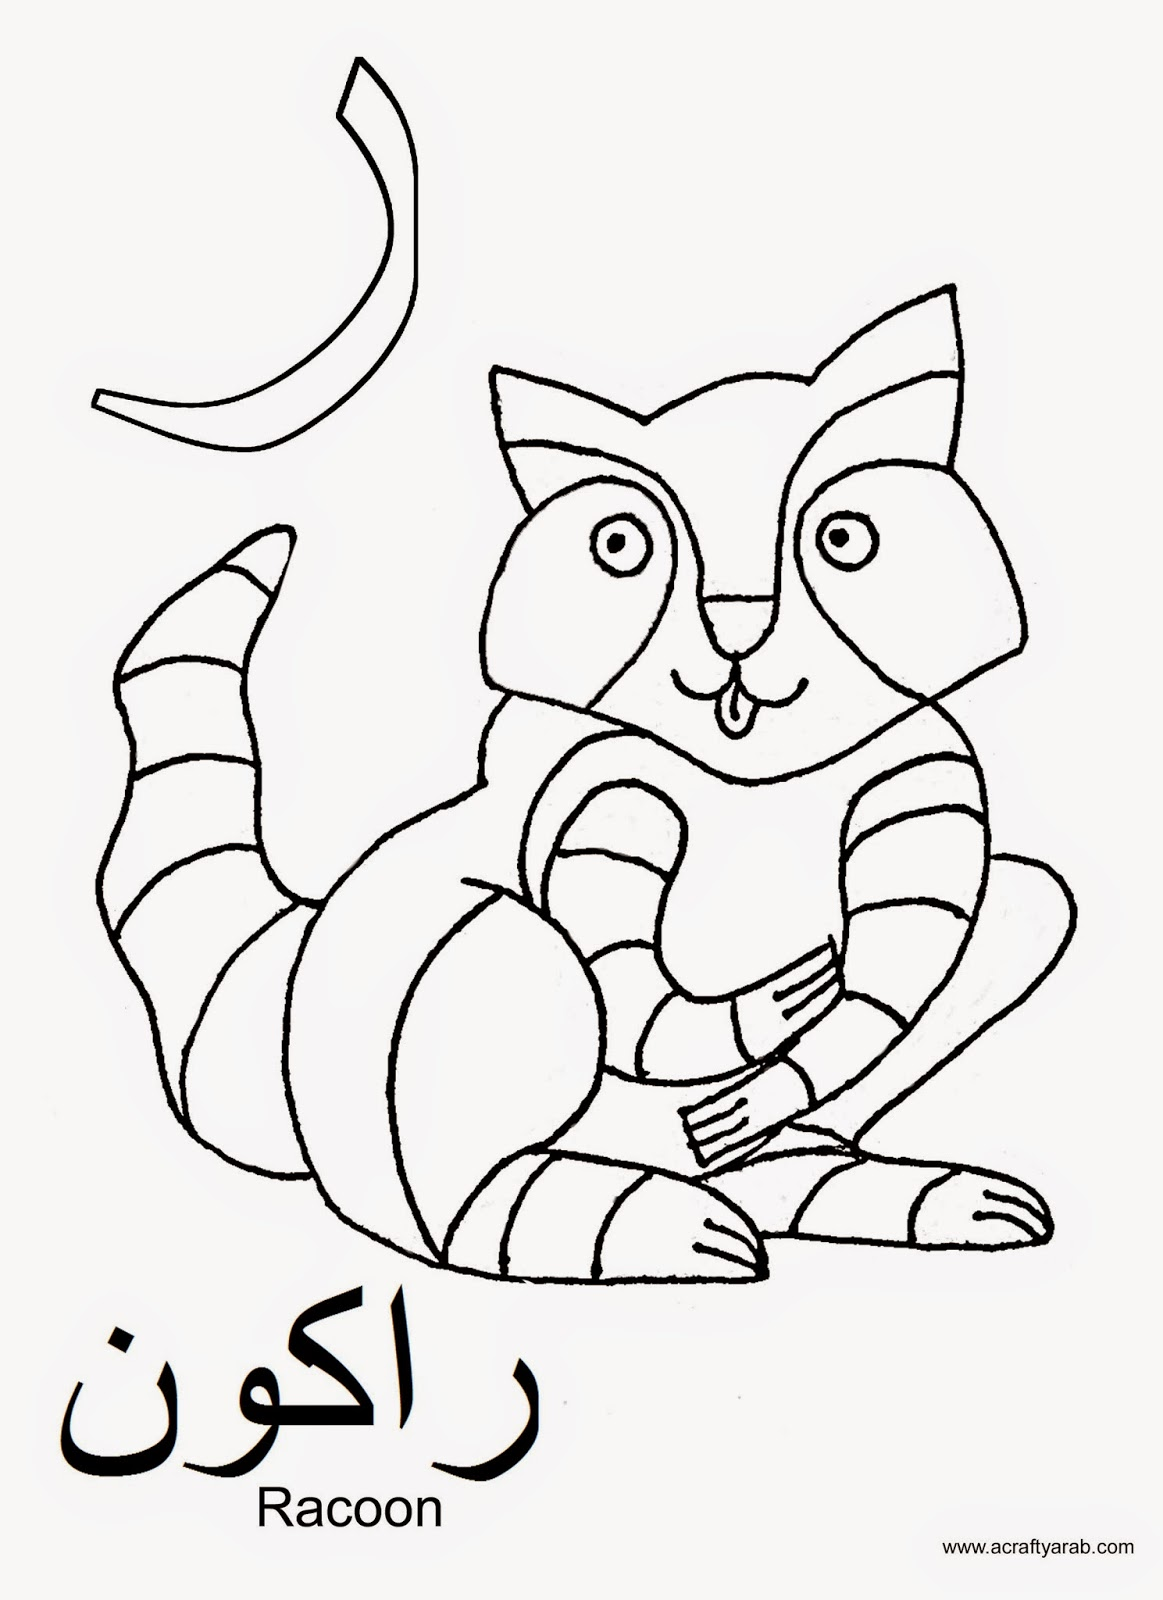 coloring pages alphabet a - arabic alphabet coloring pages ra is for racoon a crafty arab